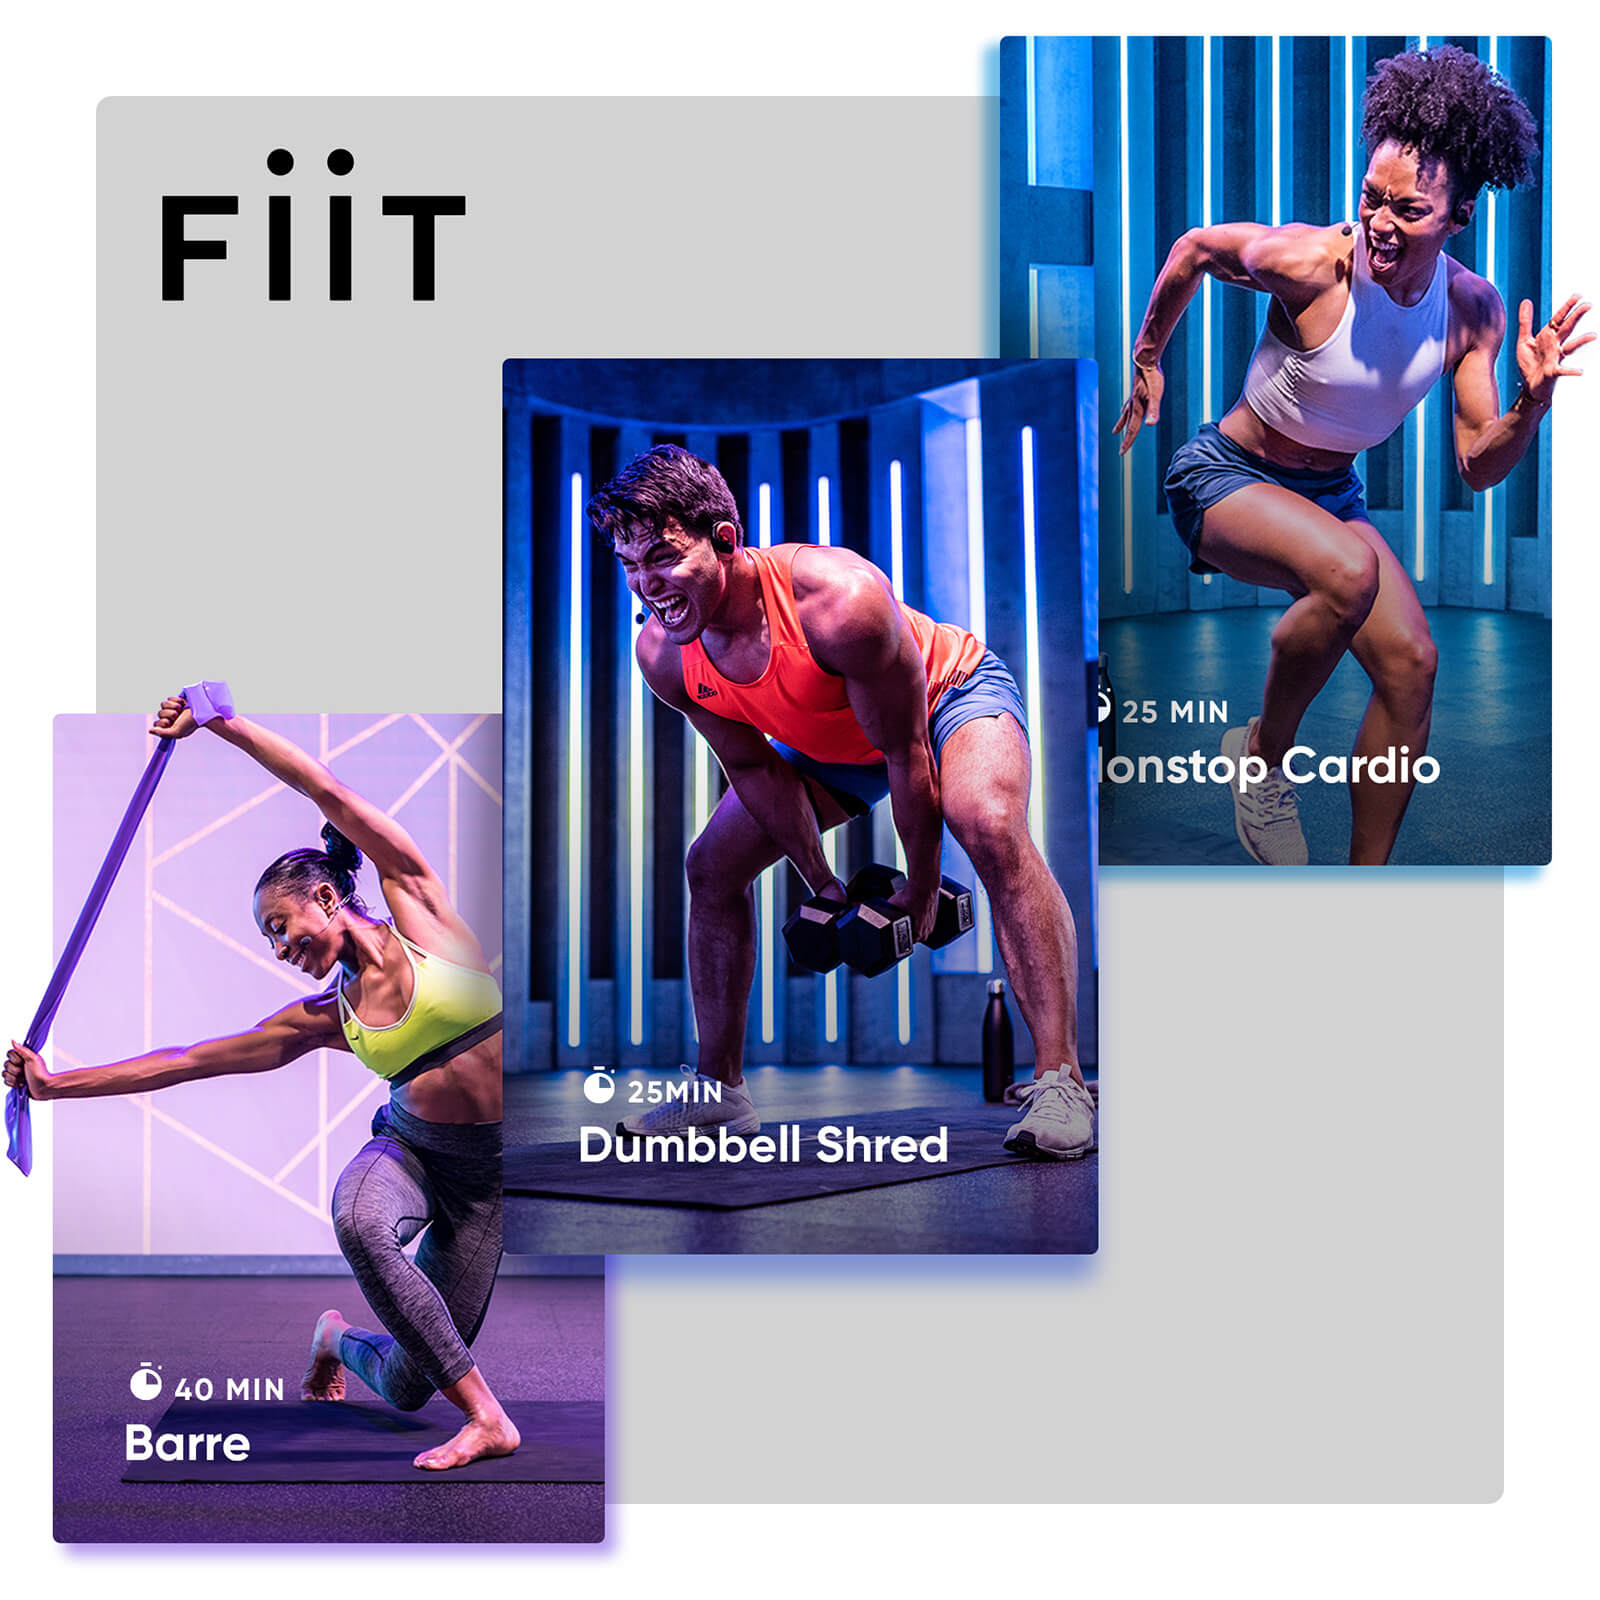 FiiT - Free 30 Day Trial